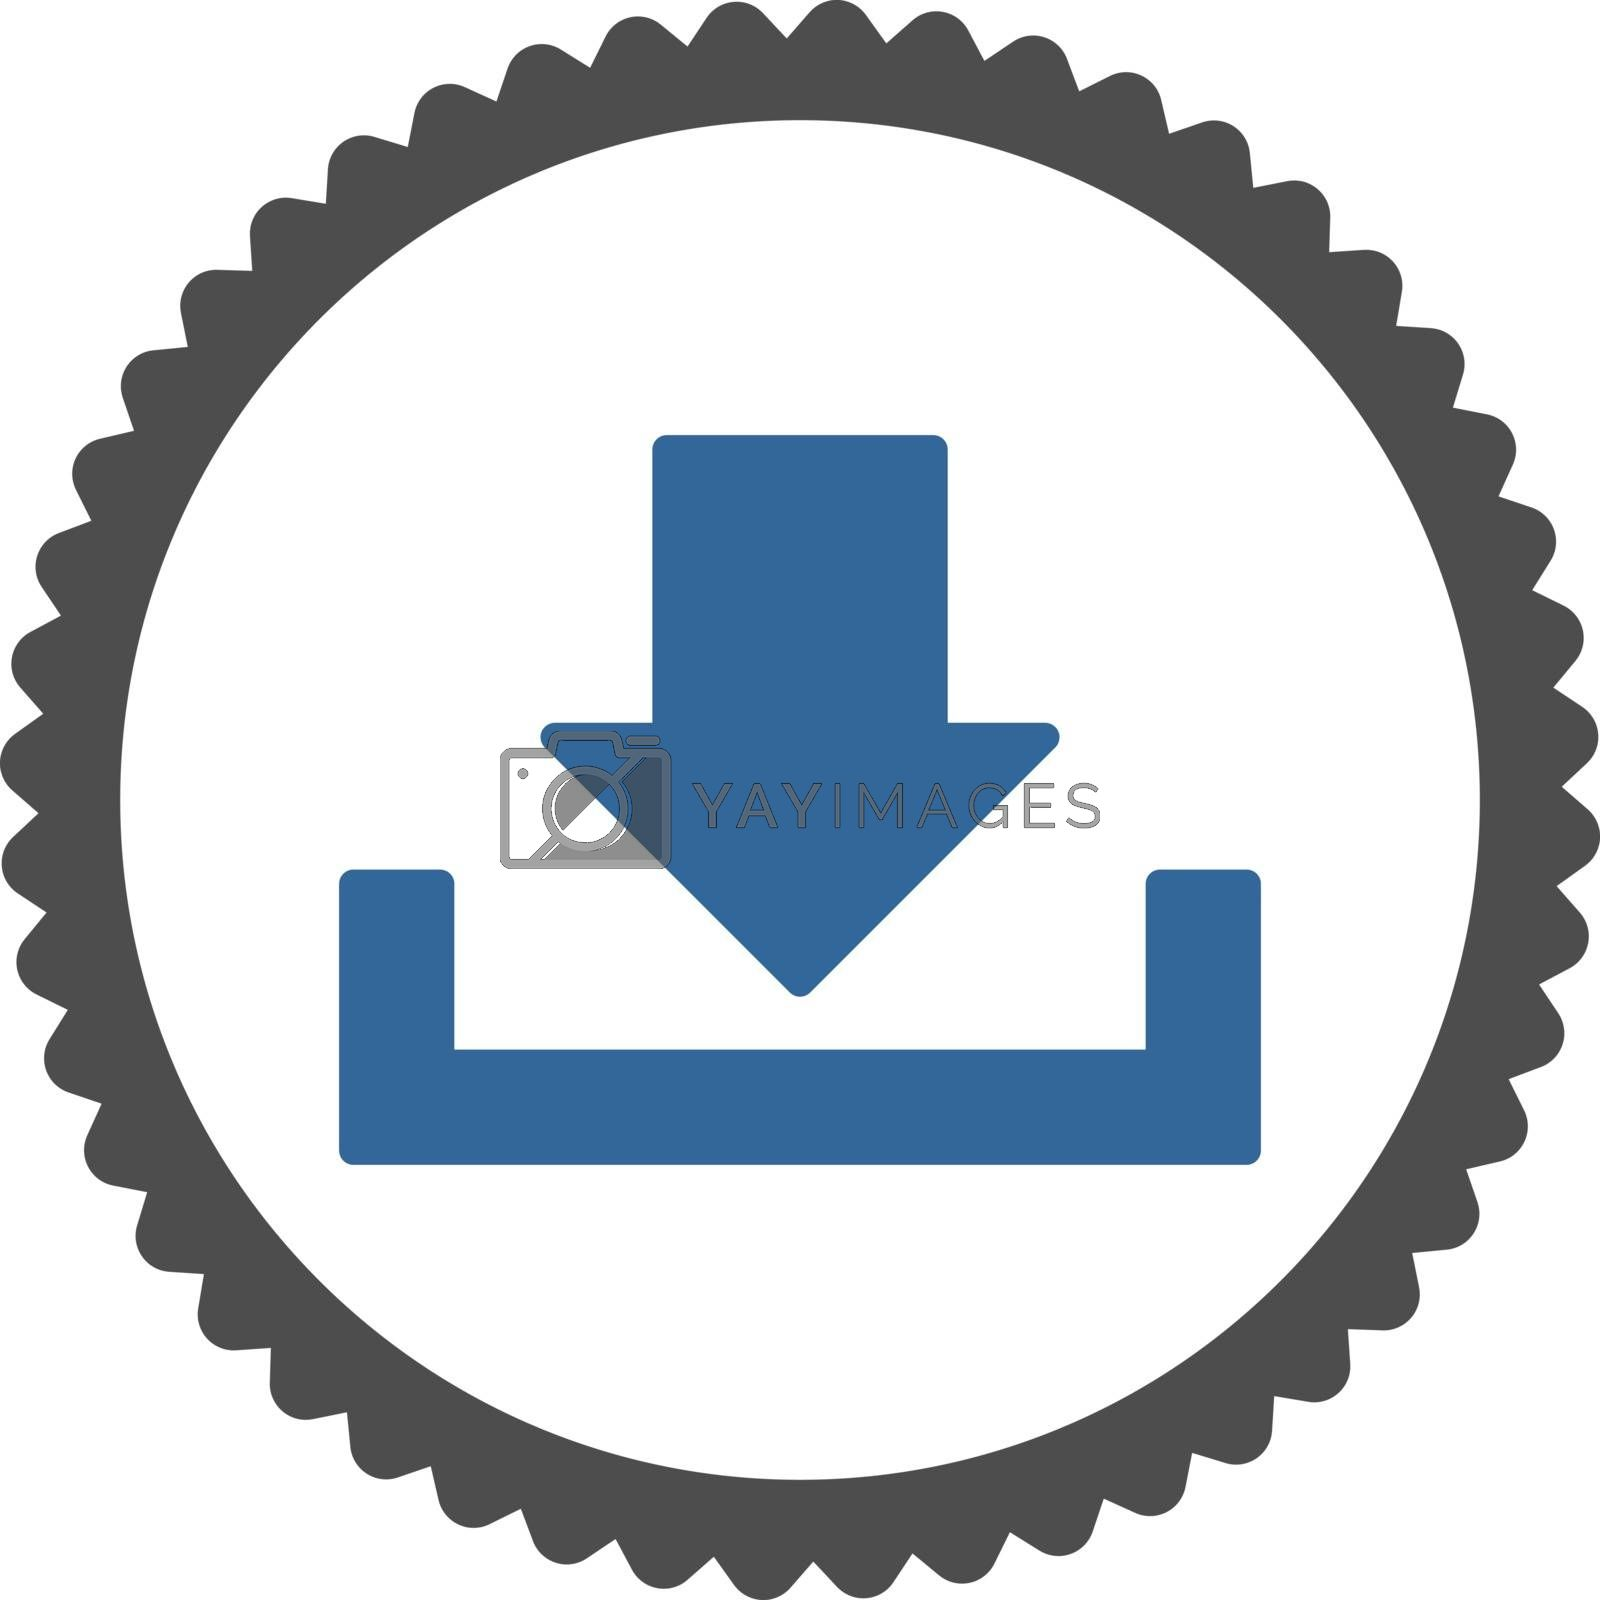 Download flat cobalt and gray colors round stamp icon by Aha-Soft